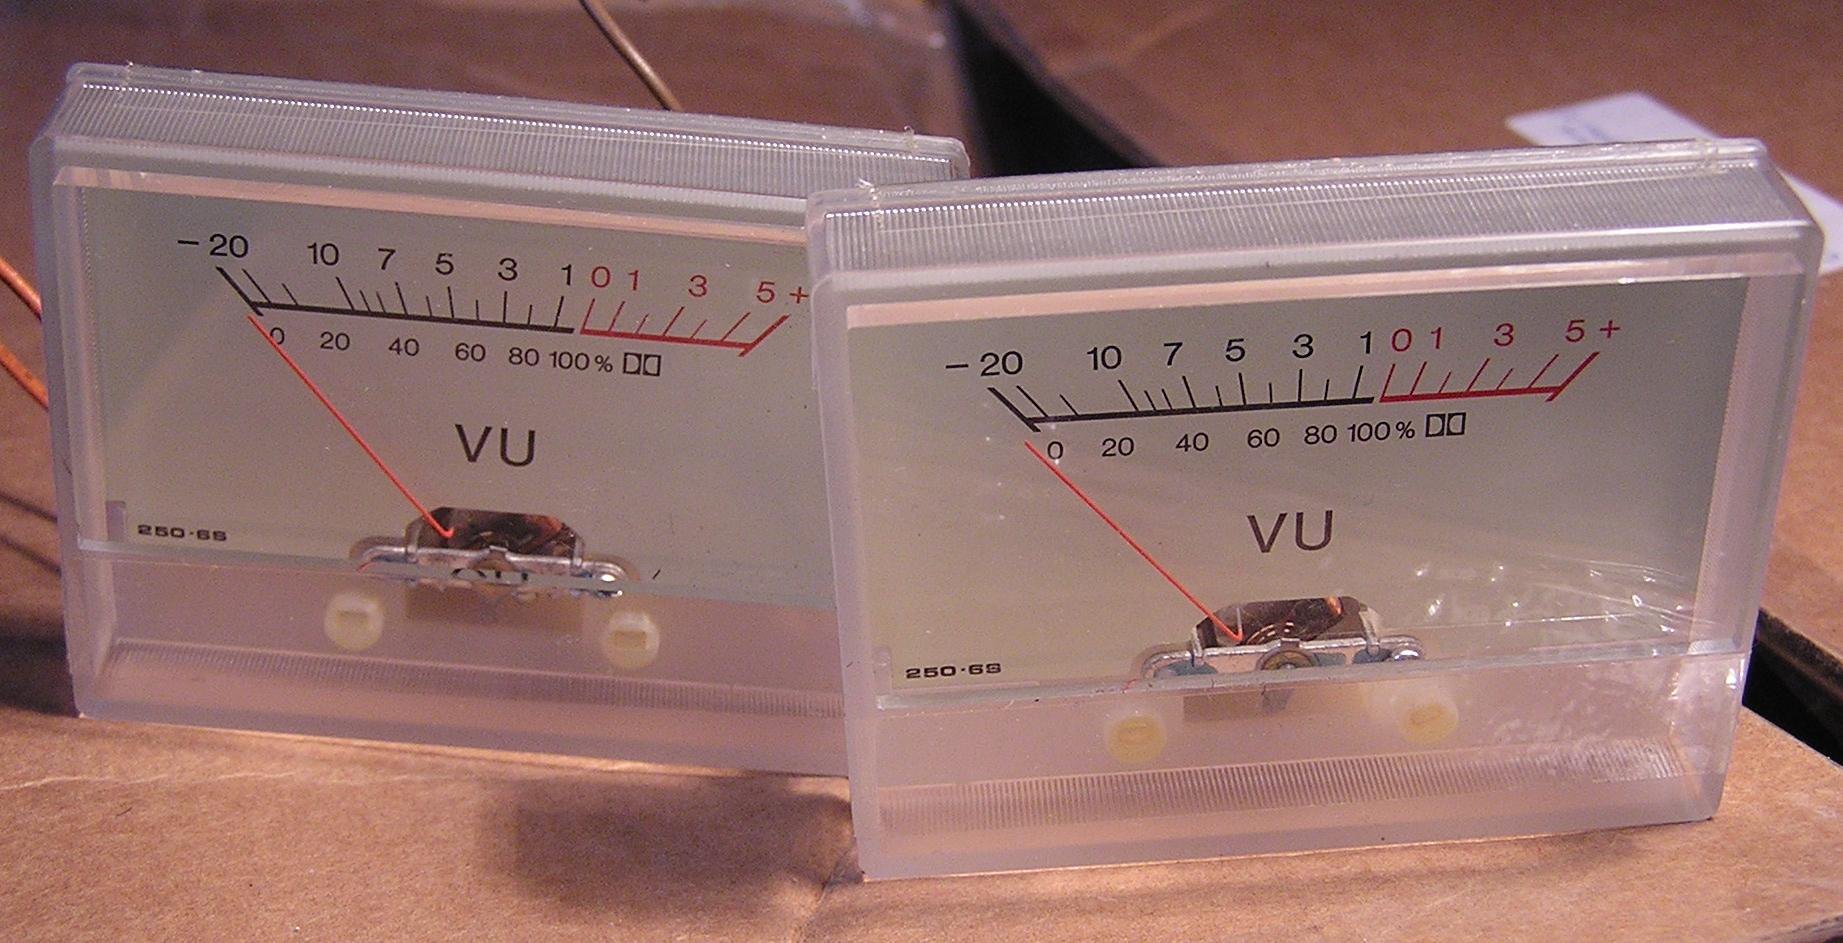 VU (volume) gauge, L/R, white